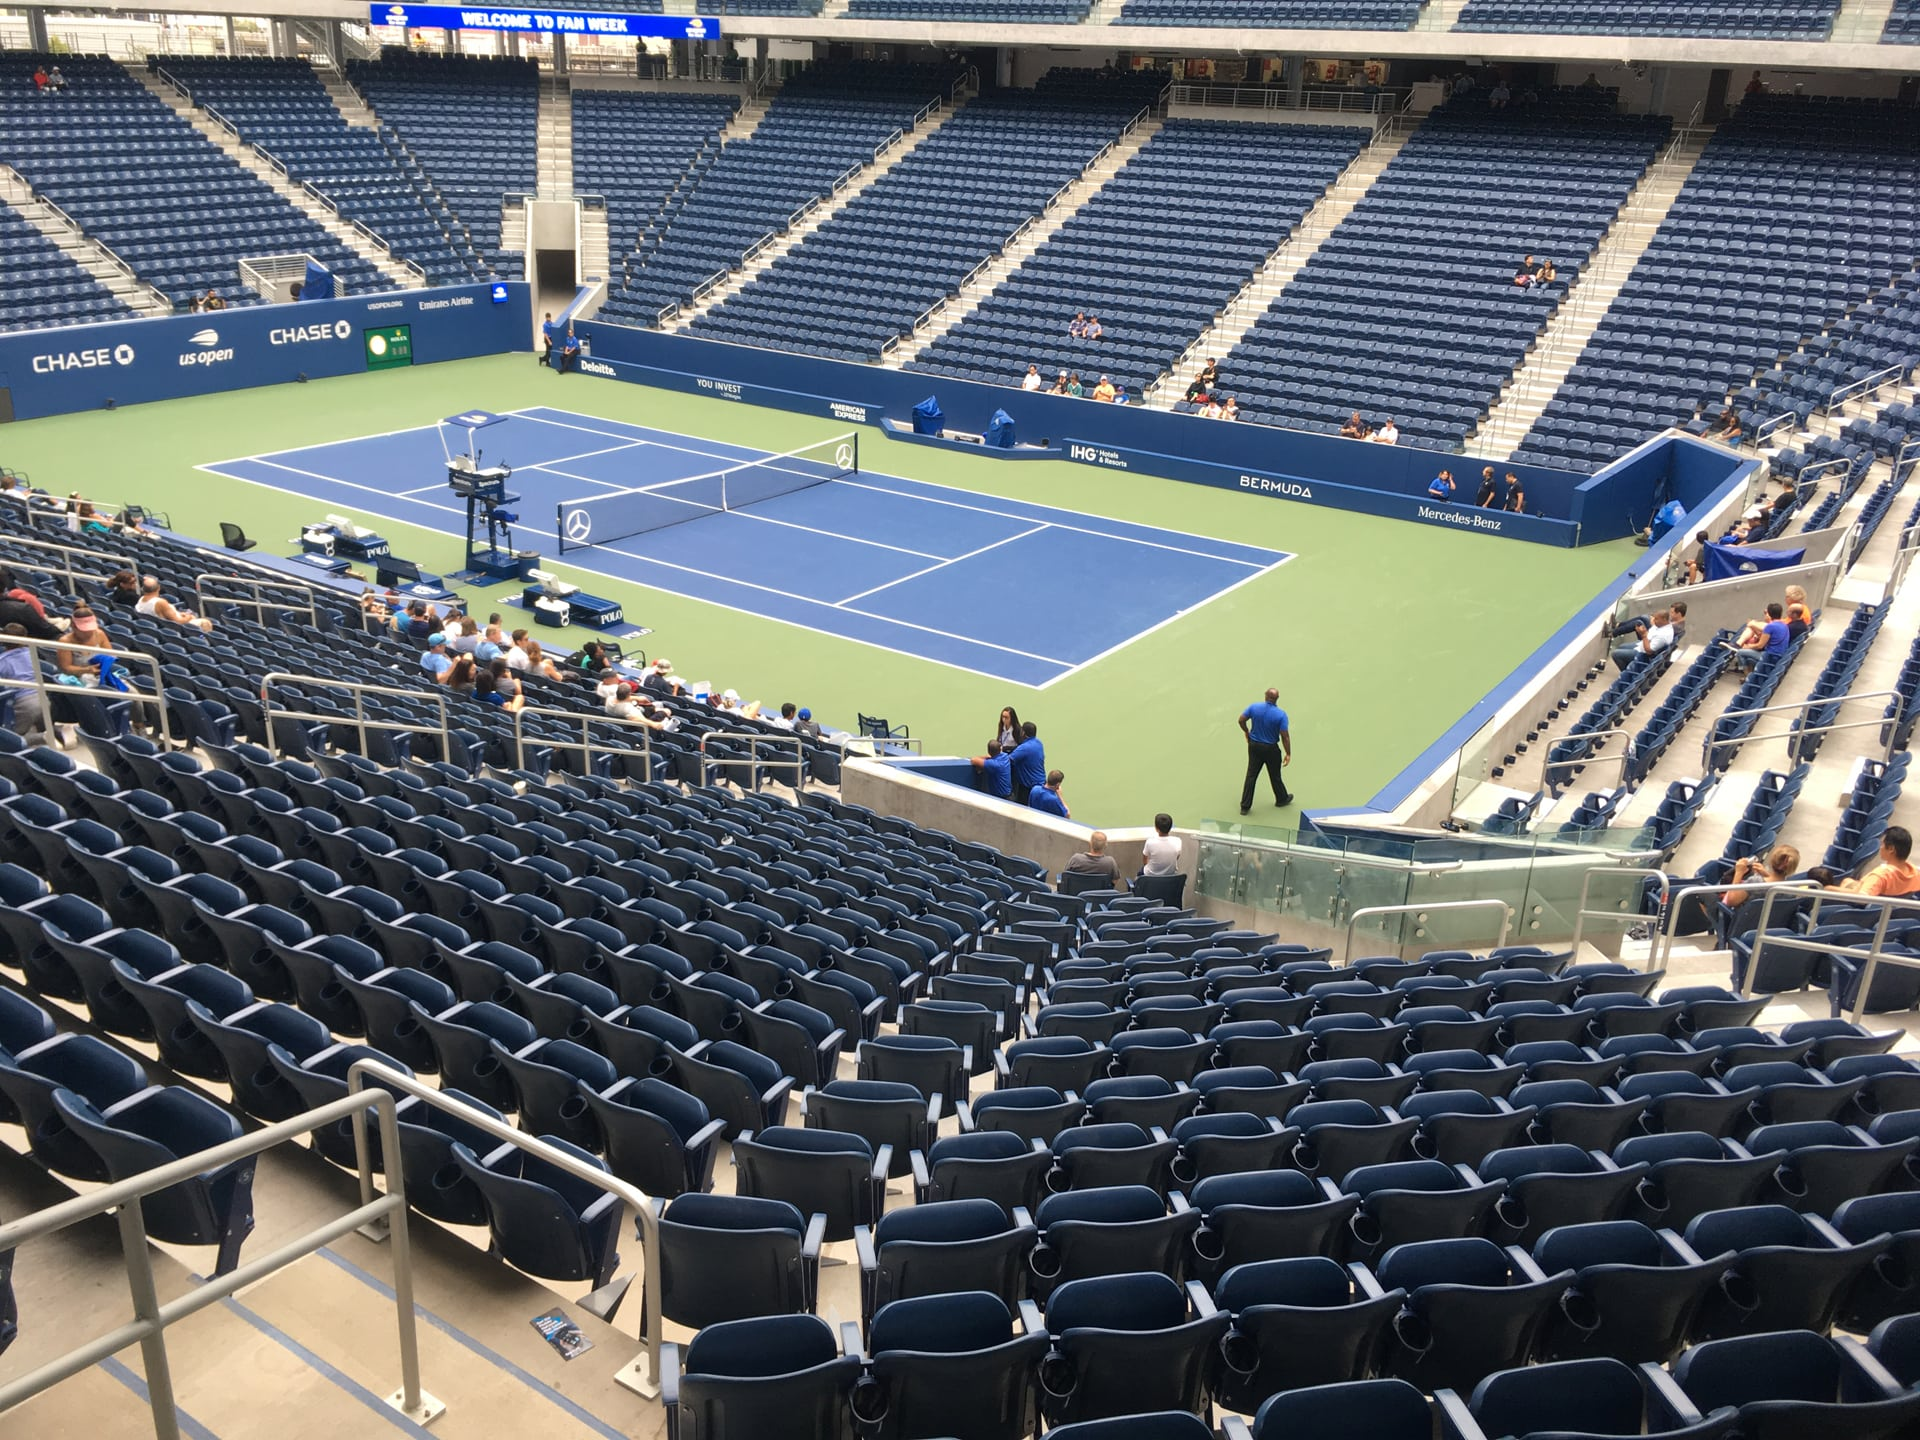 JOURNEY BLOG | US OPEN 2019 | USTA Billie Jean King National Tennis Center | THE SPIDERS|web design, homepage design in Brooklyn, New York|ニューヨーク、ブルックリンのホームページ制作、名刺、イラスト、インテリアデザイン、デザインなら何でもお任せ下さい。